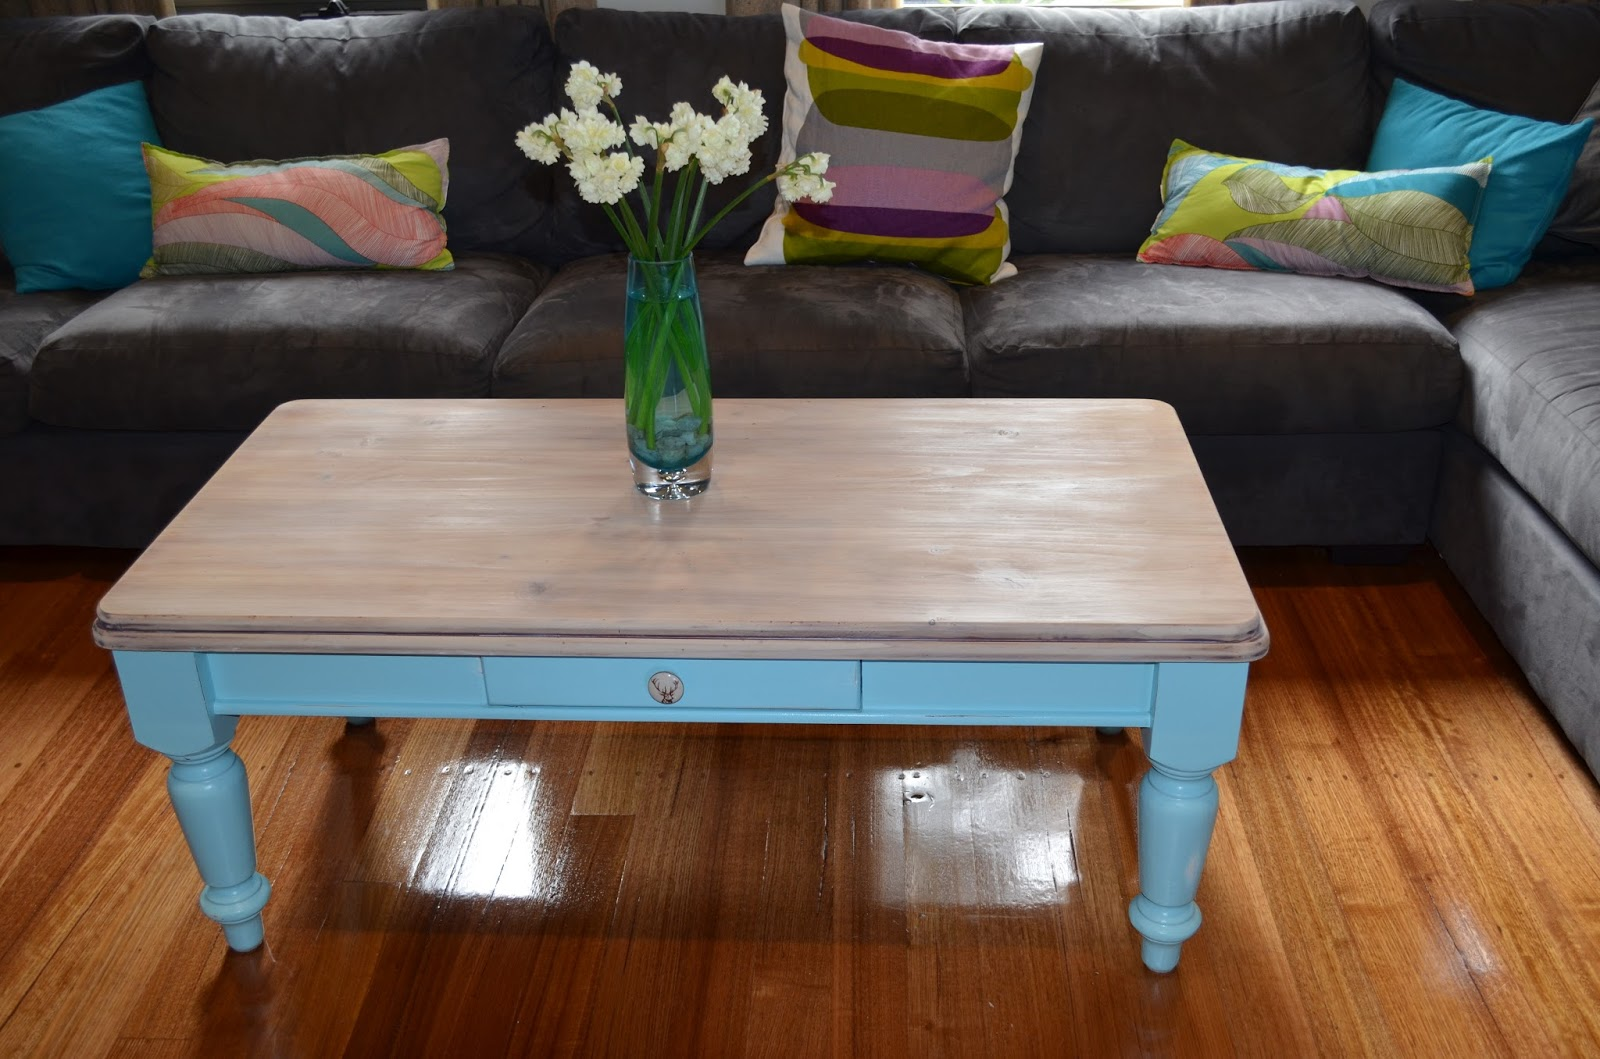 retro vintage love: pale blue and whitewashed distressed coffee table